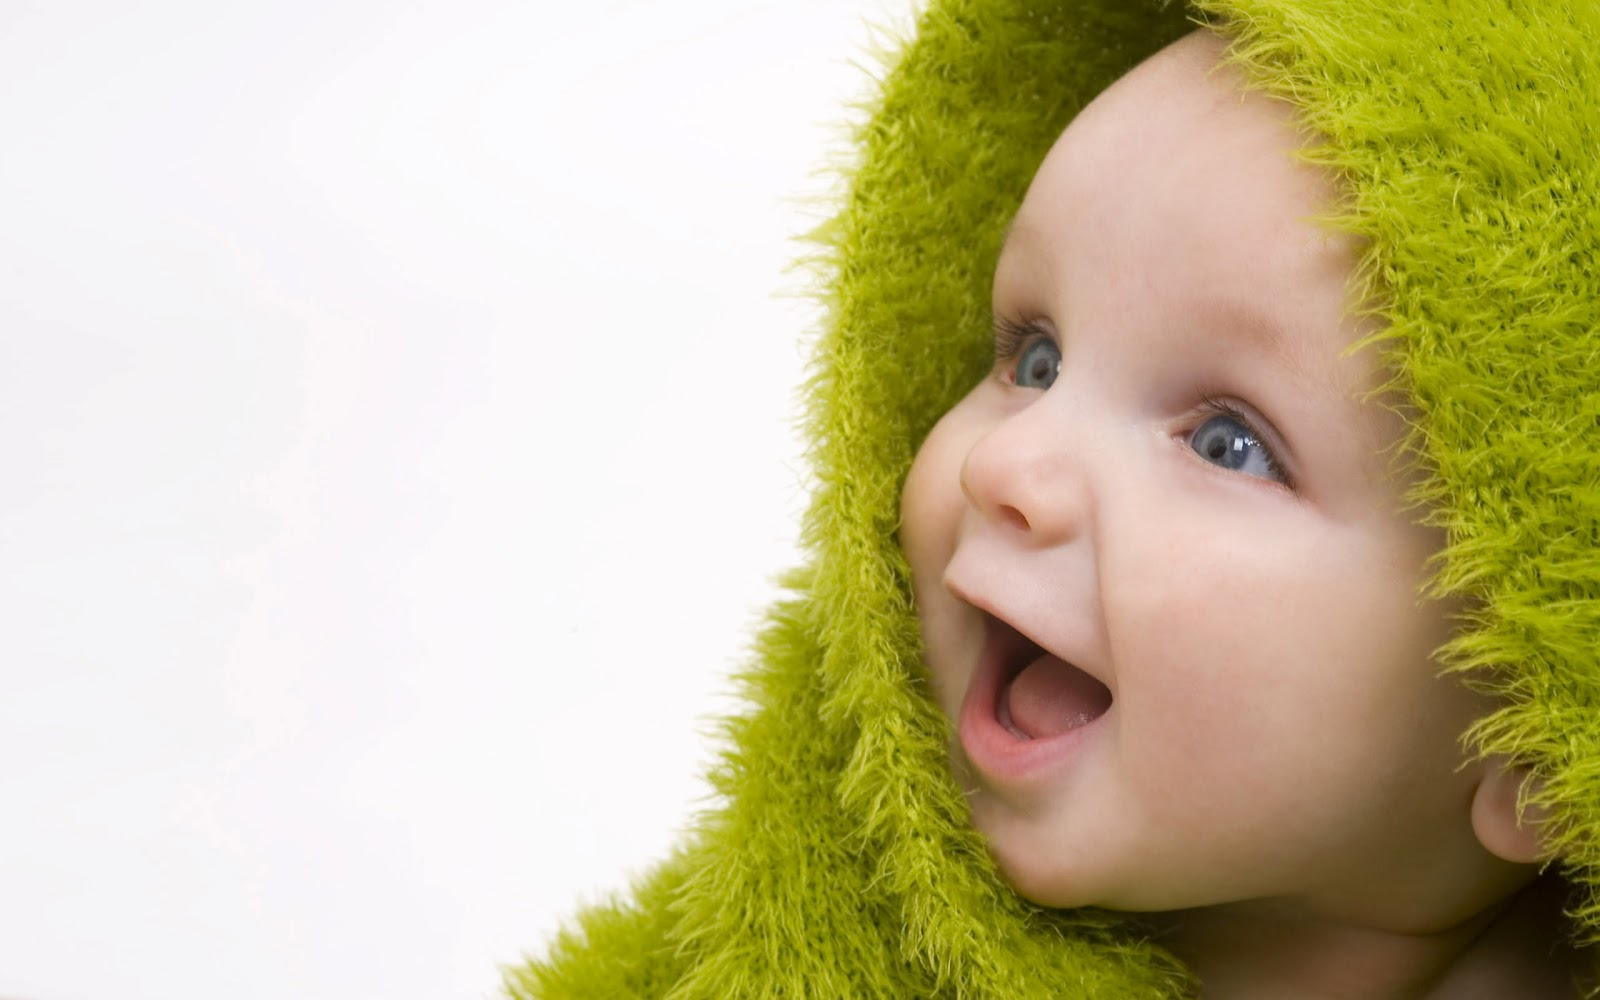 all about funny pictures collection: cute baby hd wallpapers 2012